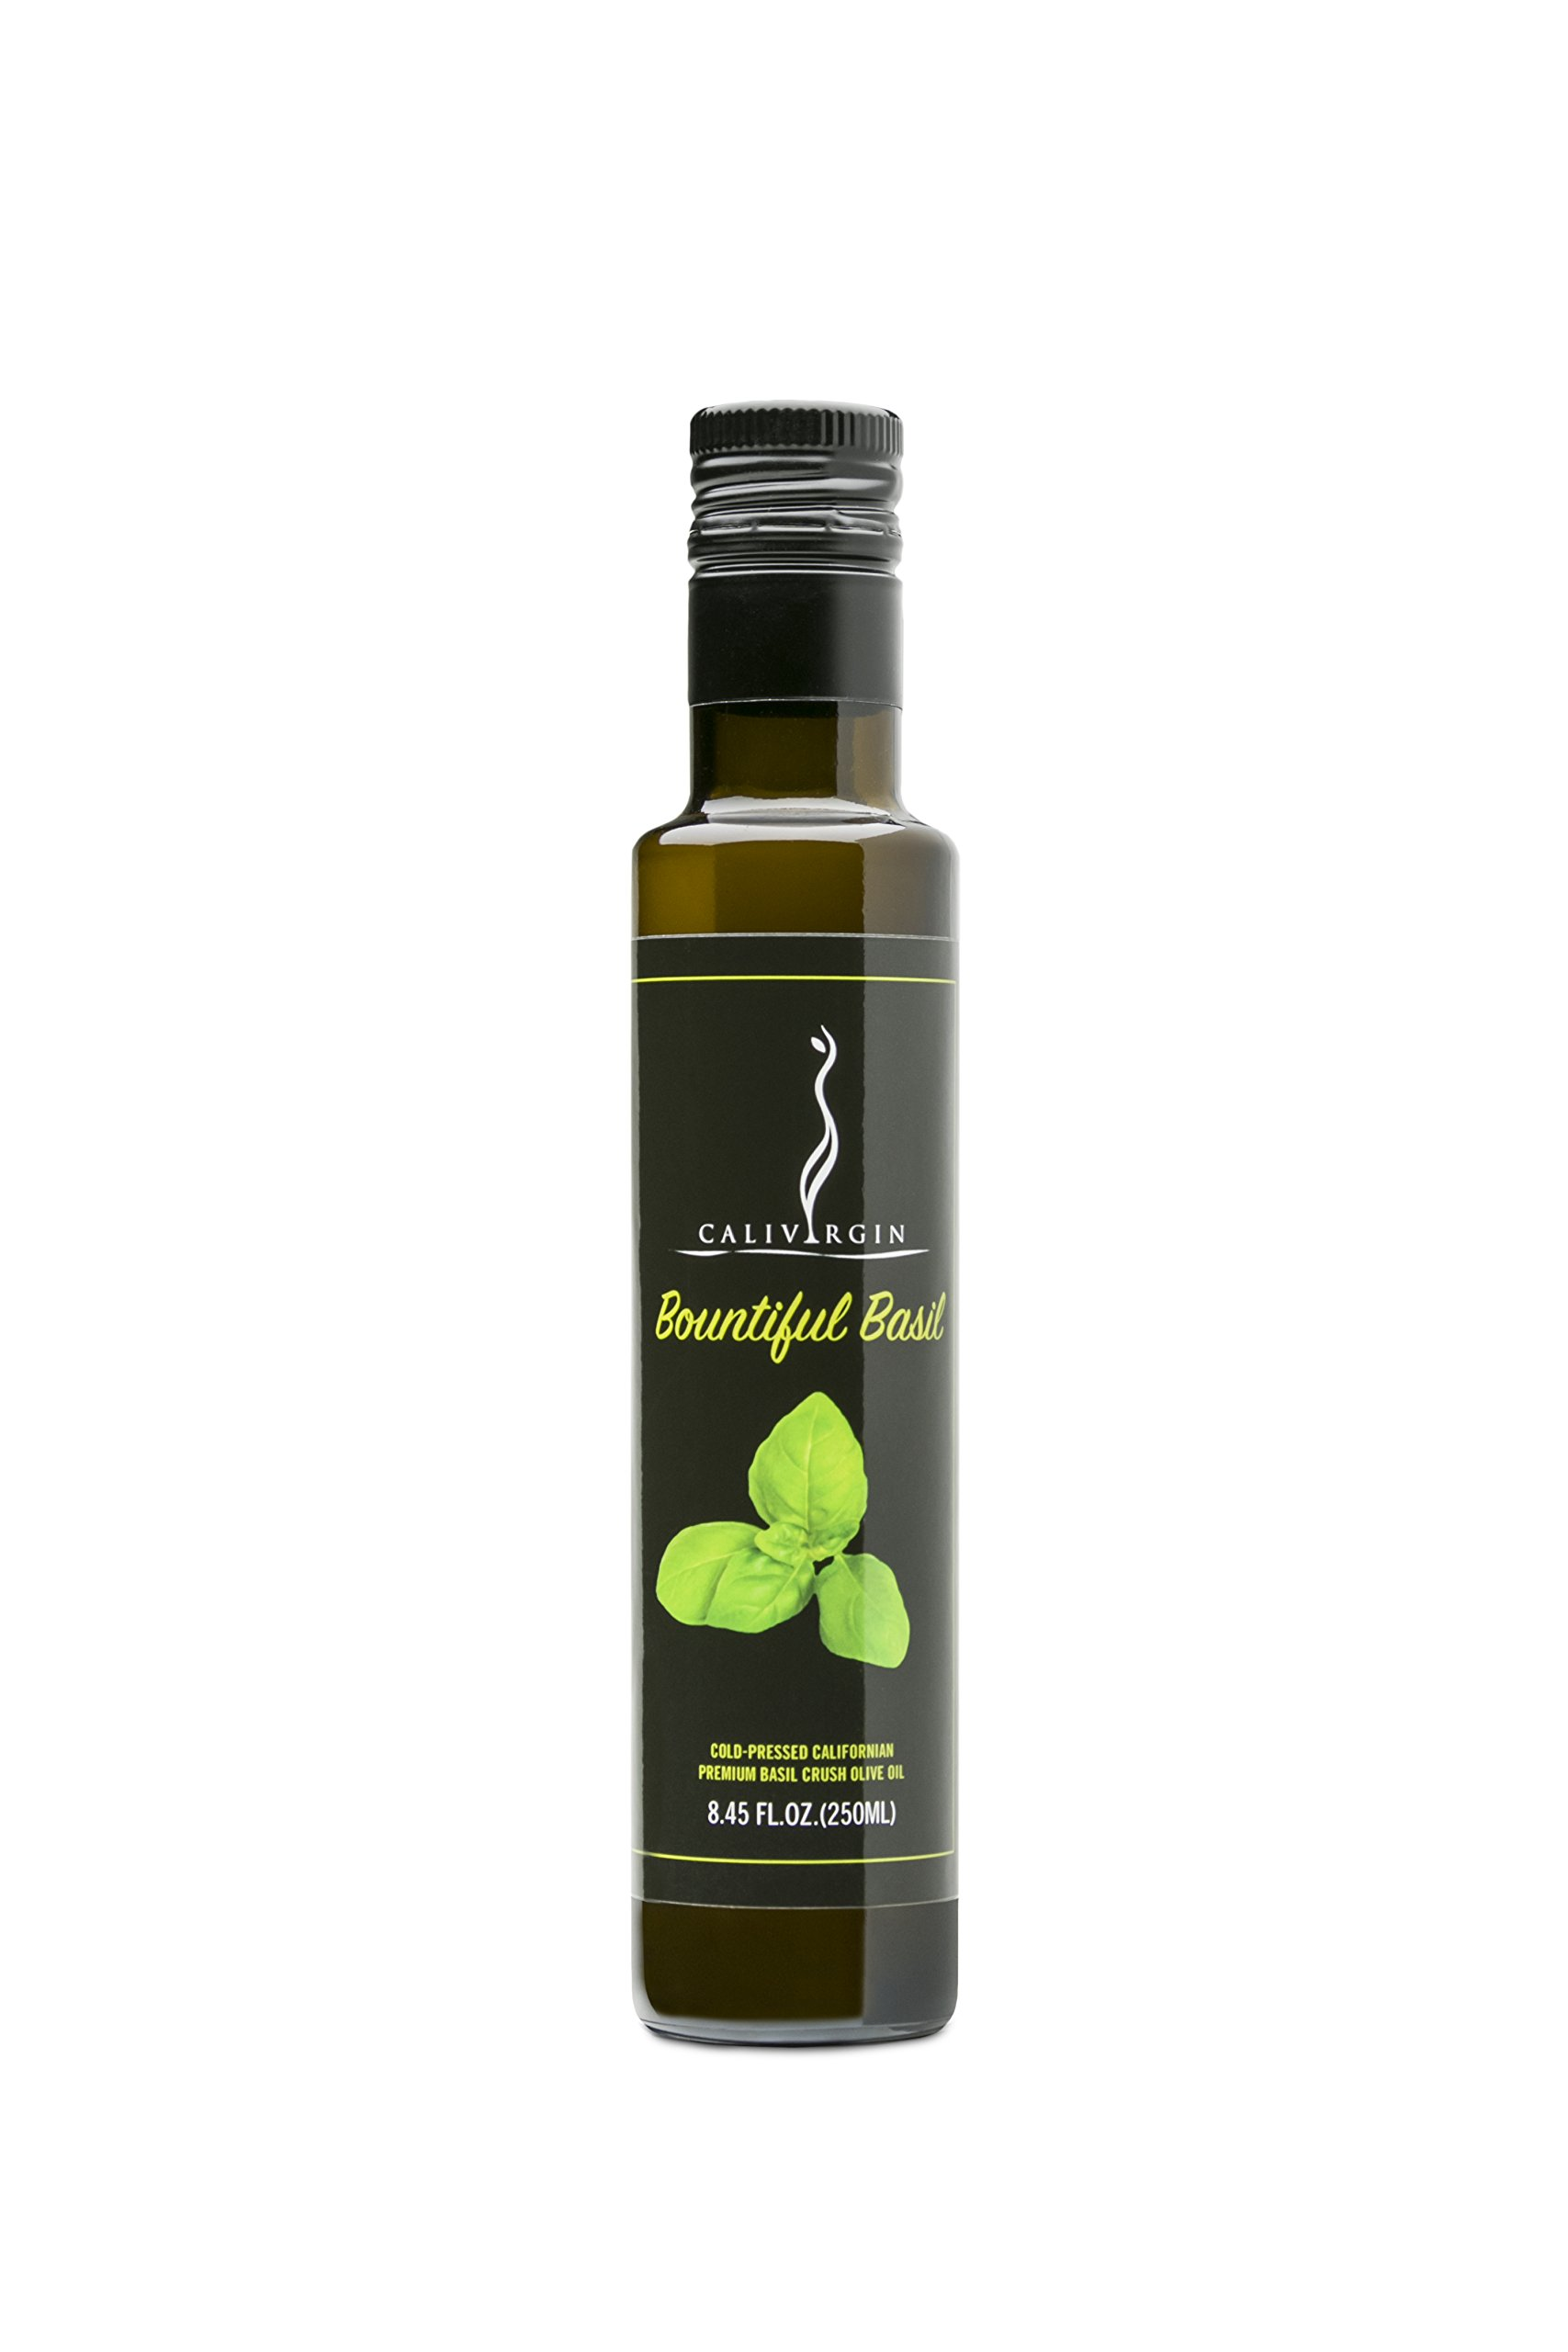 Calivirgin Bountiful Basil Flavor-Crushed Olive Oil - 100% Natural Fresh Flavor, No Additives or Preservatives - Organically and Sustainably Grown in California (8.45 Fl.Oz. / 250ML)